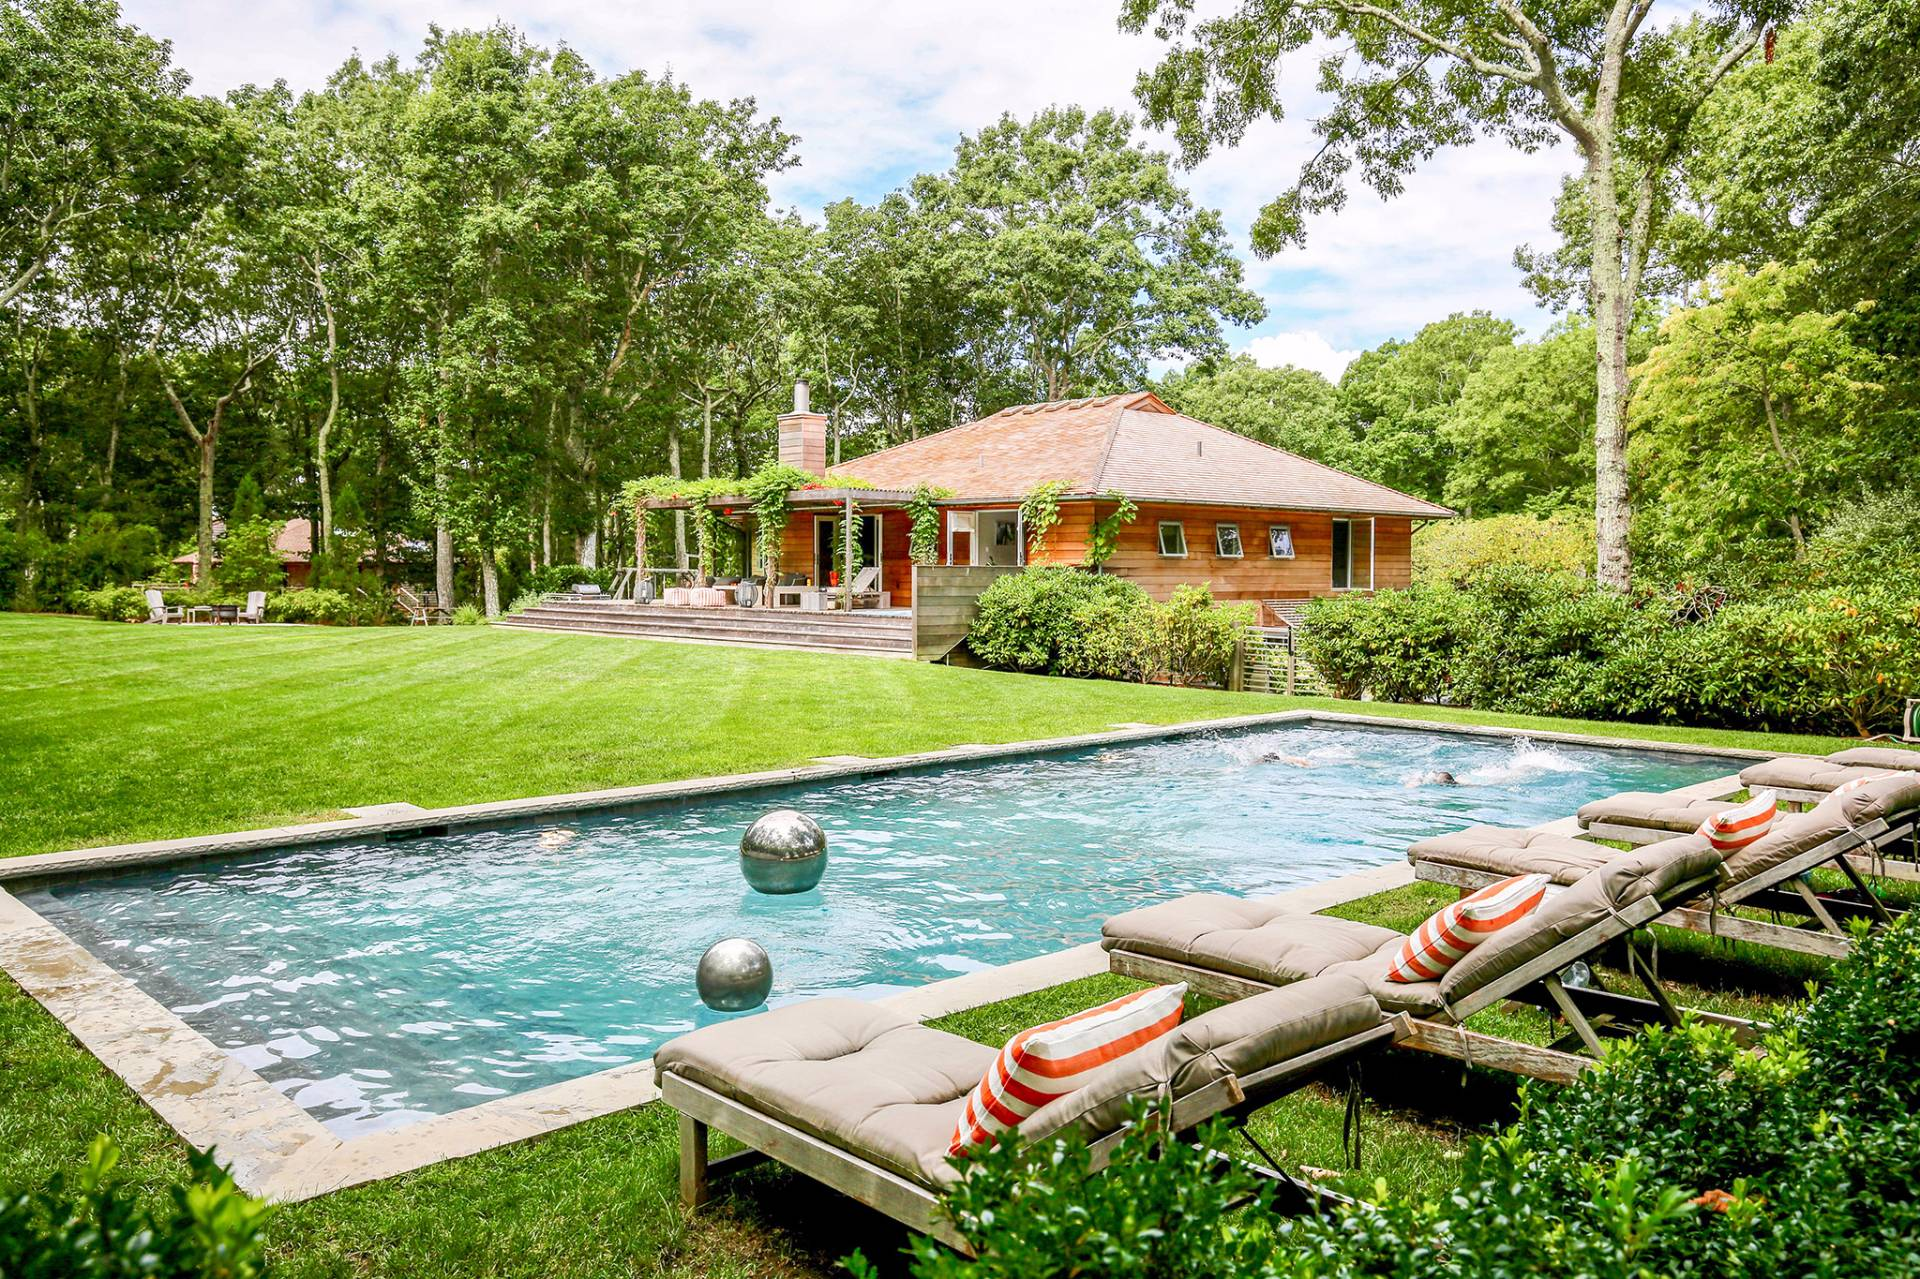 Casa Unifamiliar por un Alquiler en Super Cool And Great Pool Southampton, Nueva York